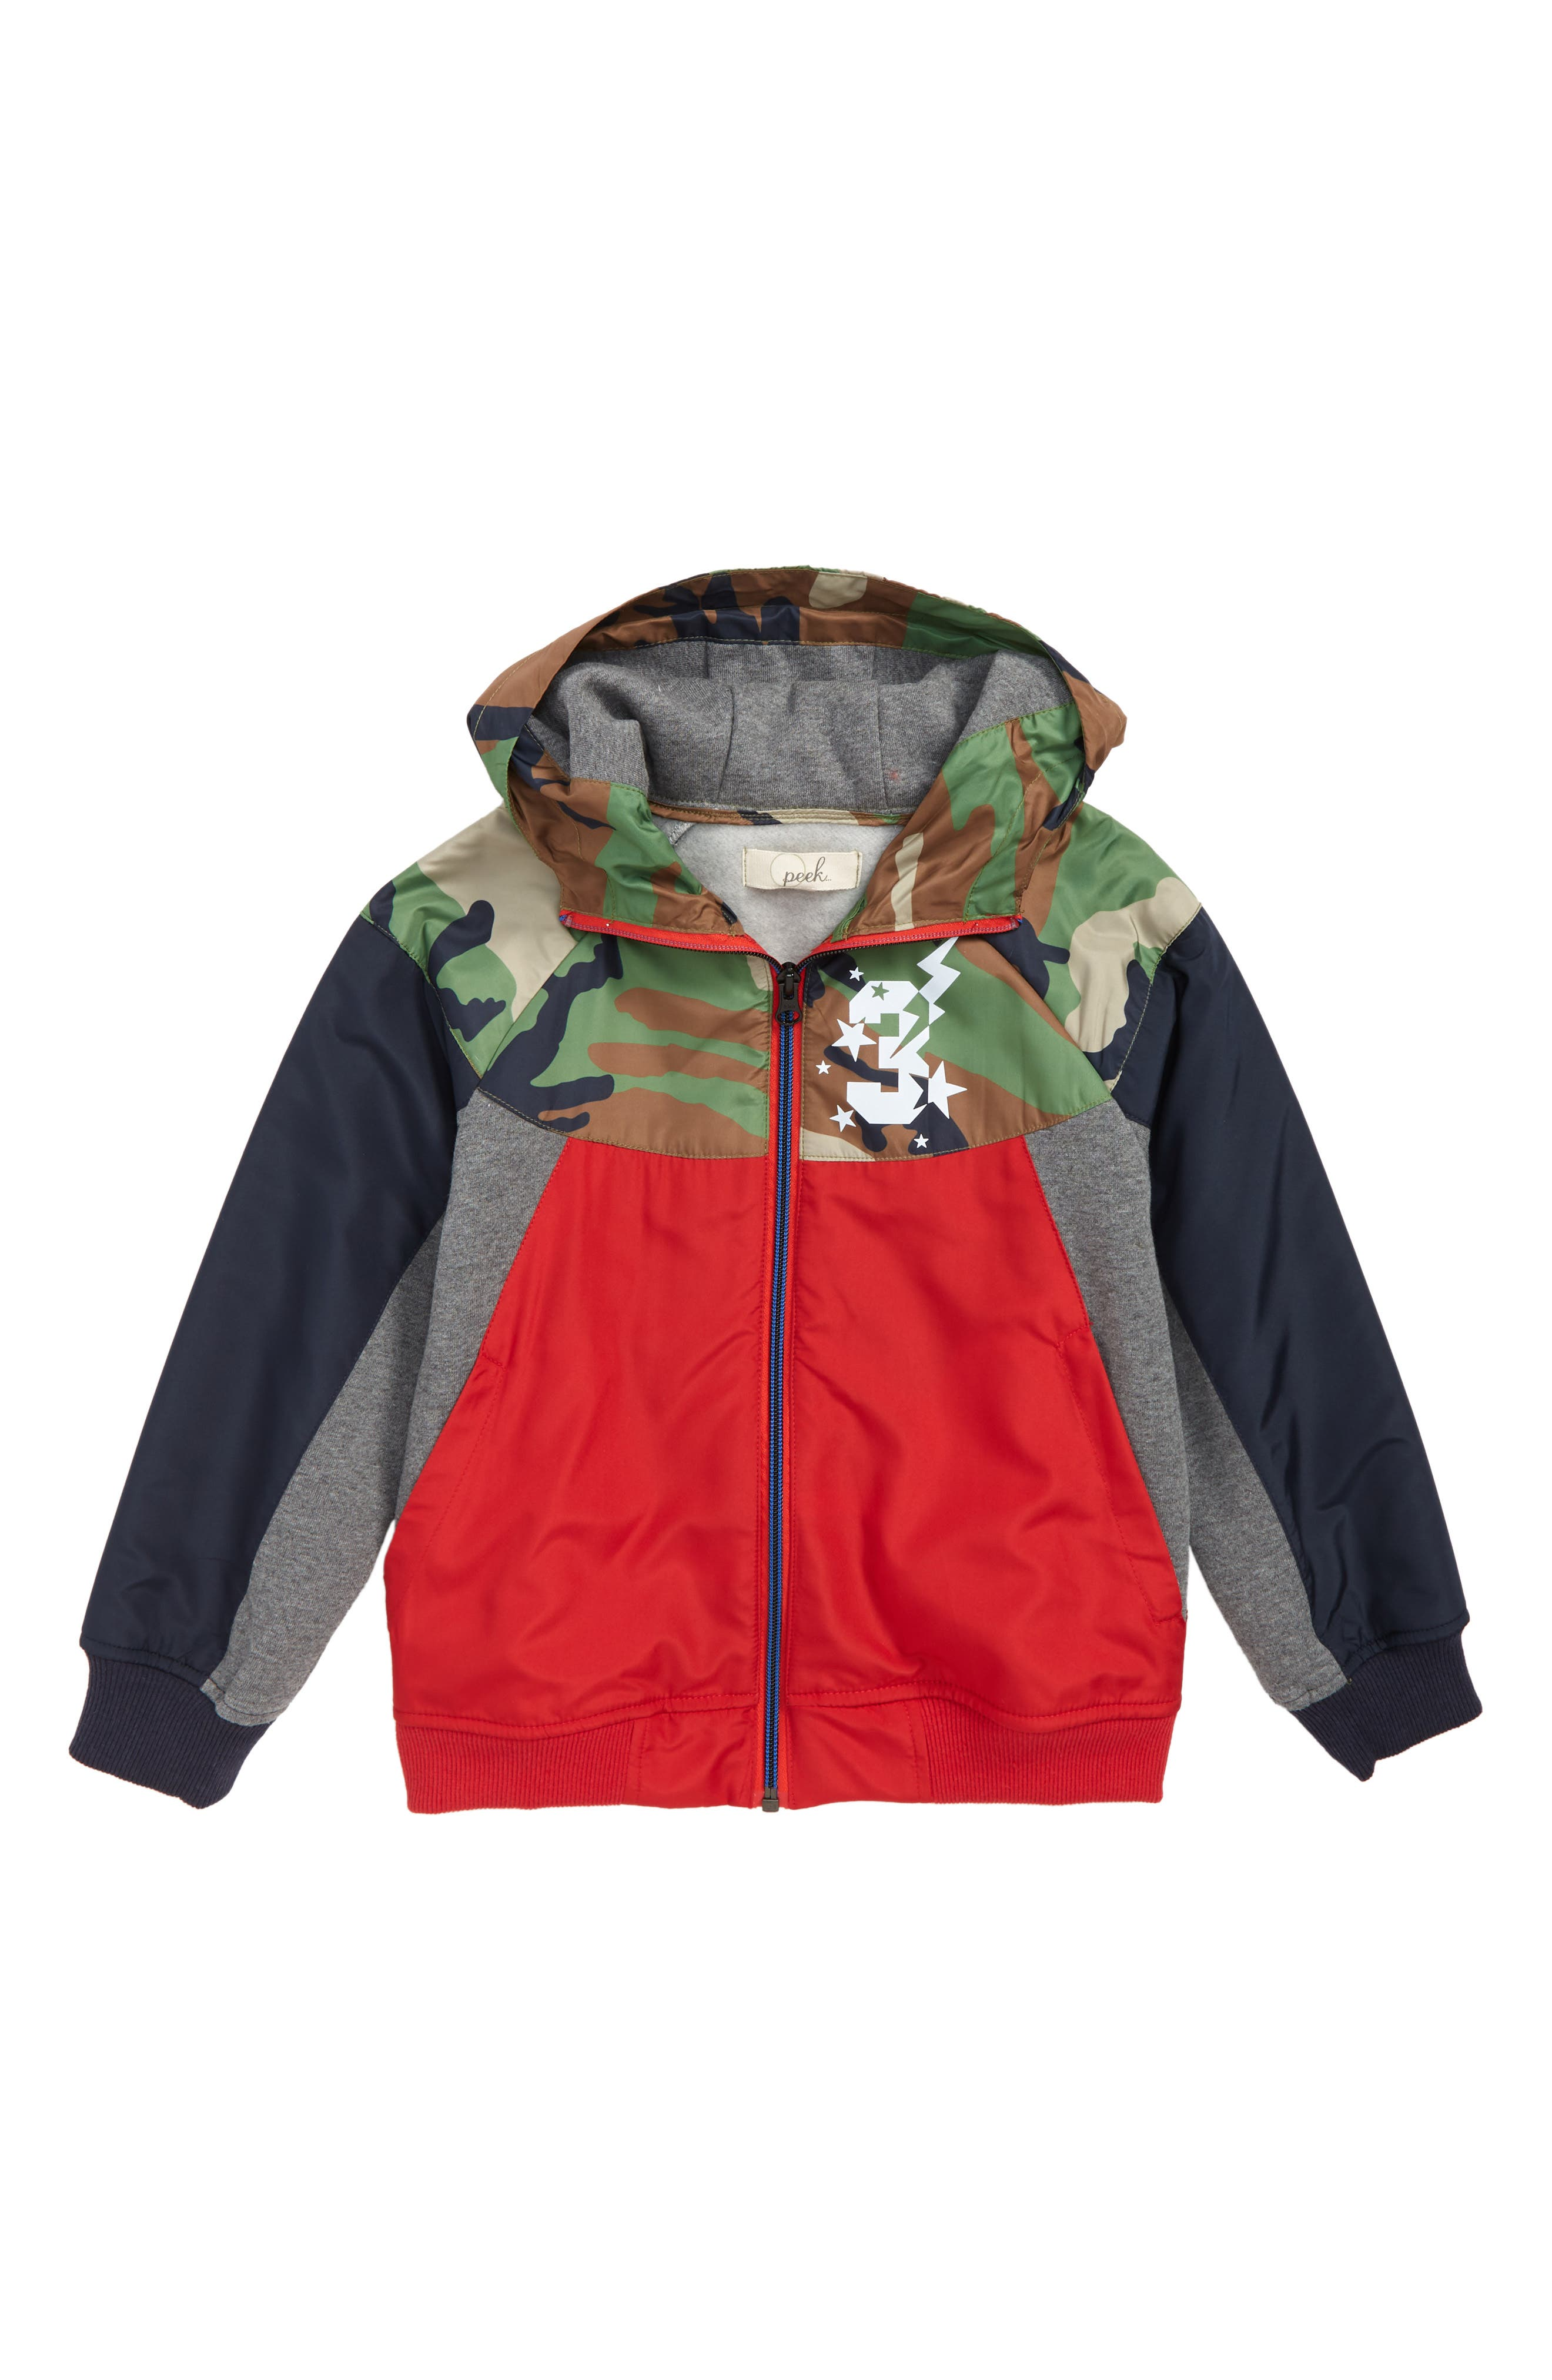 Ryder Hoodie,                             Main thumbnail 1, color,                             410